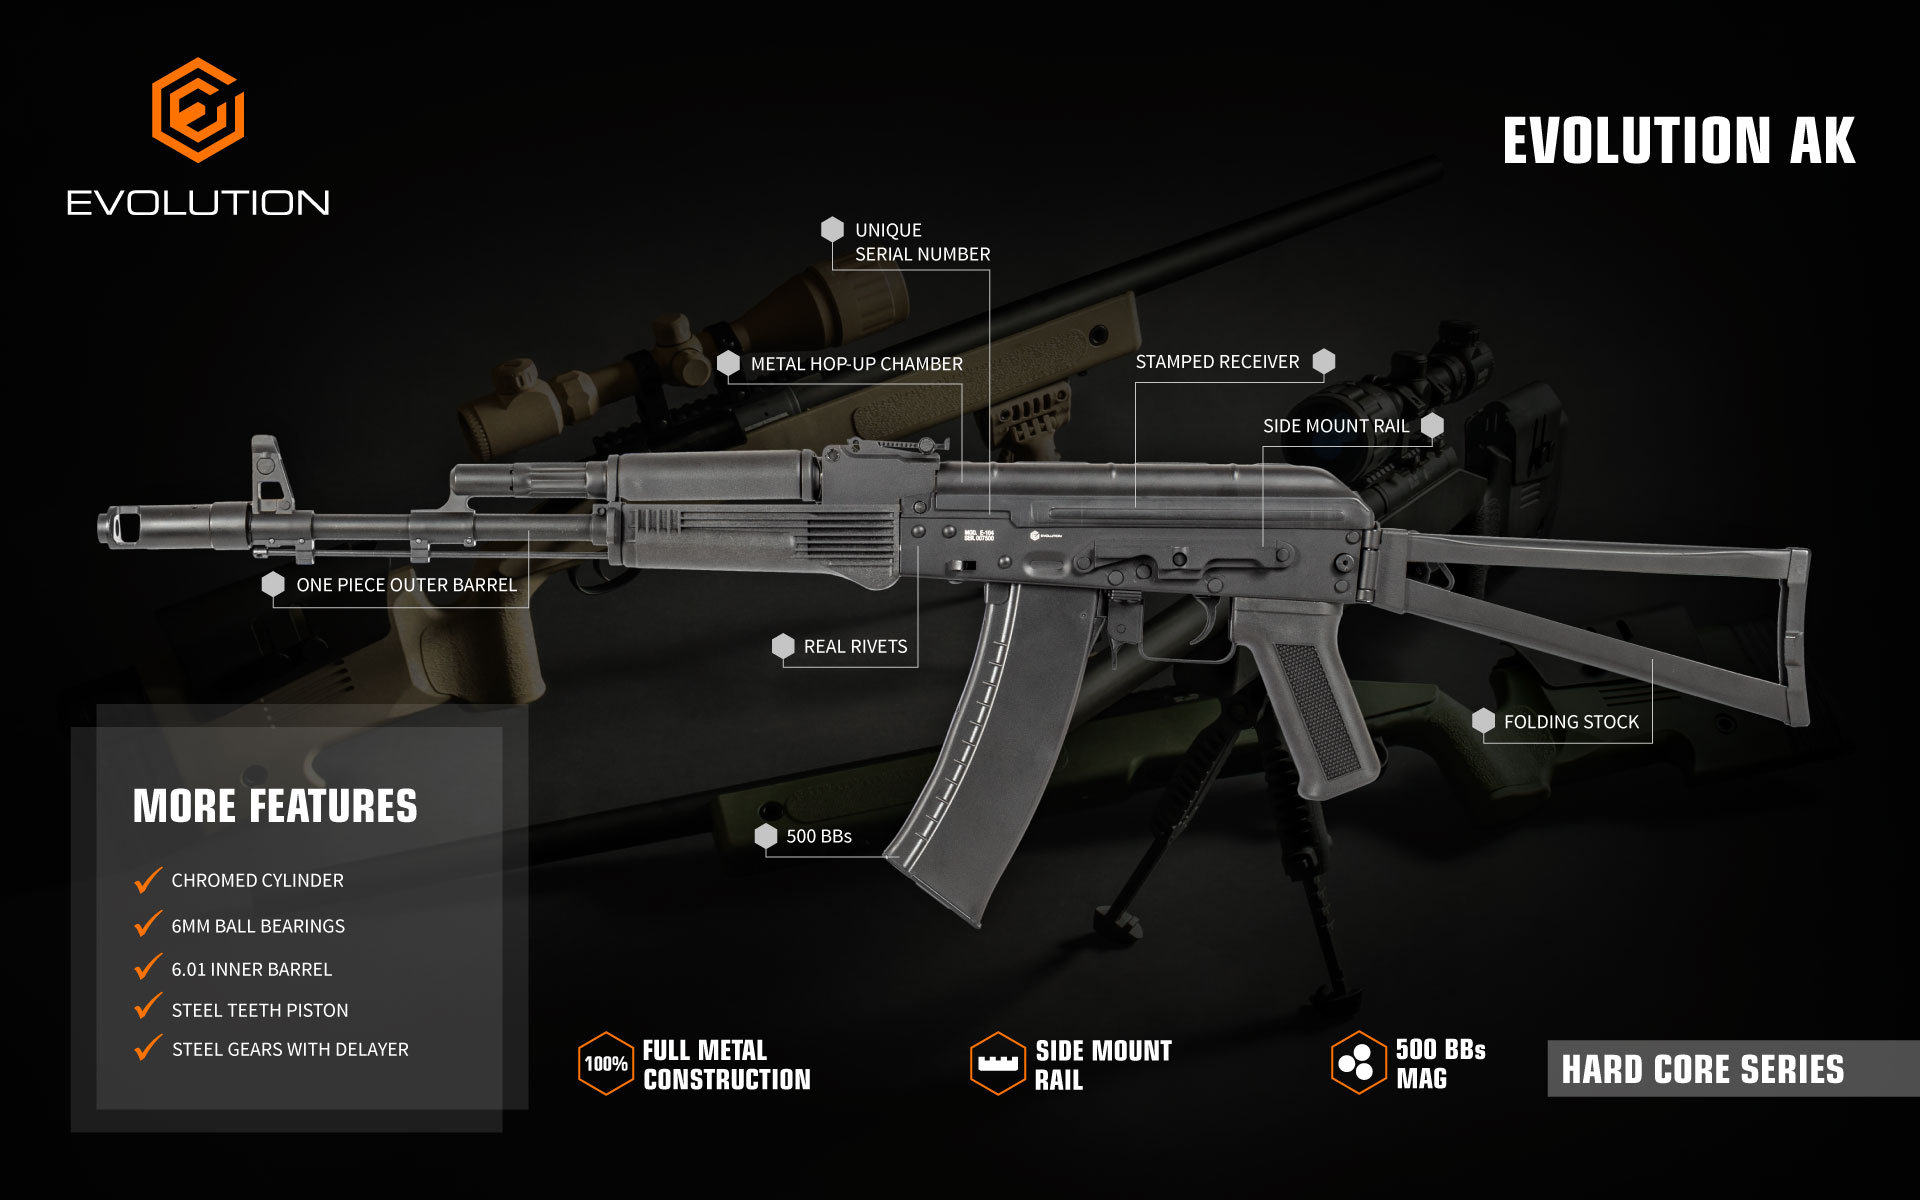 Evolution AK air soft gun